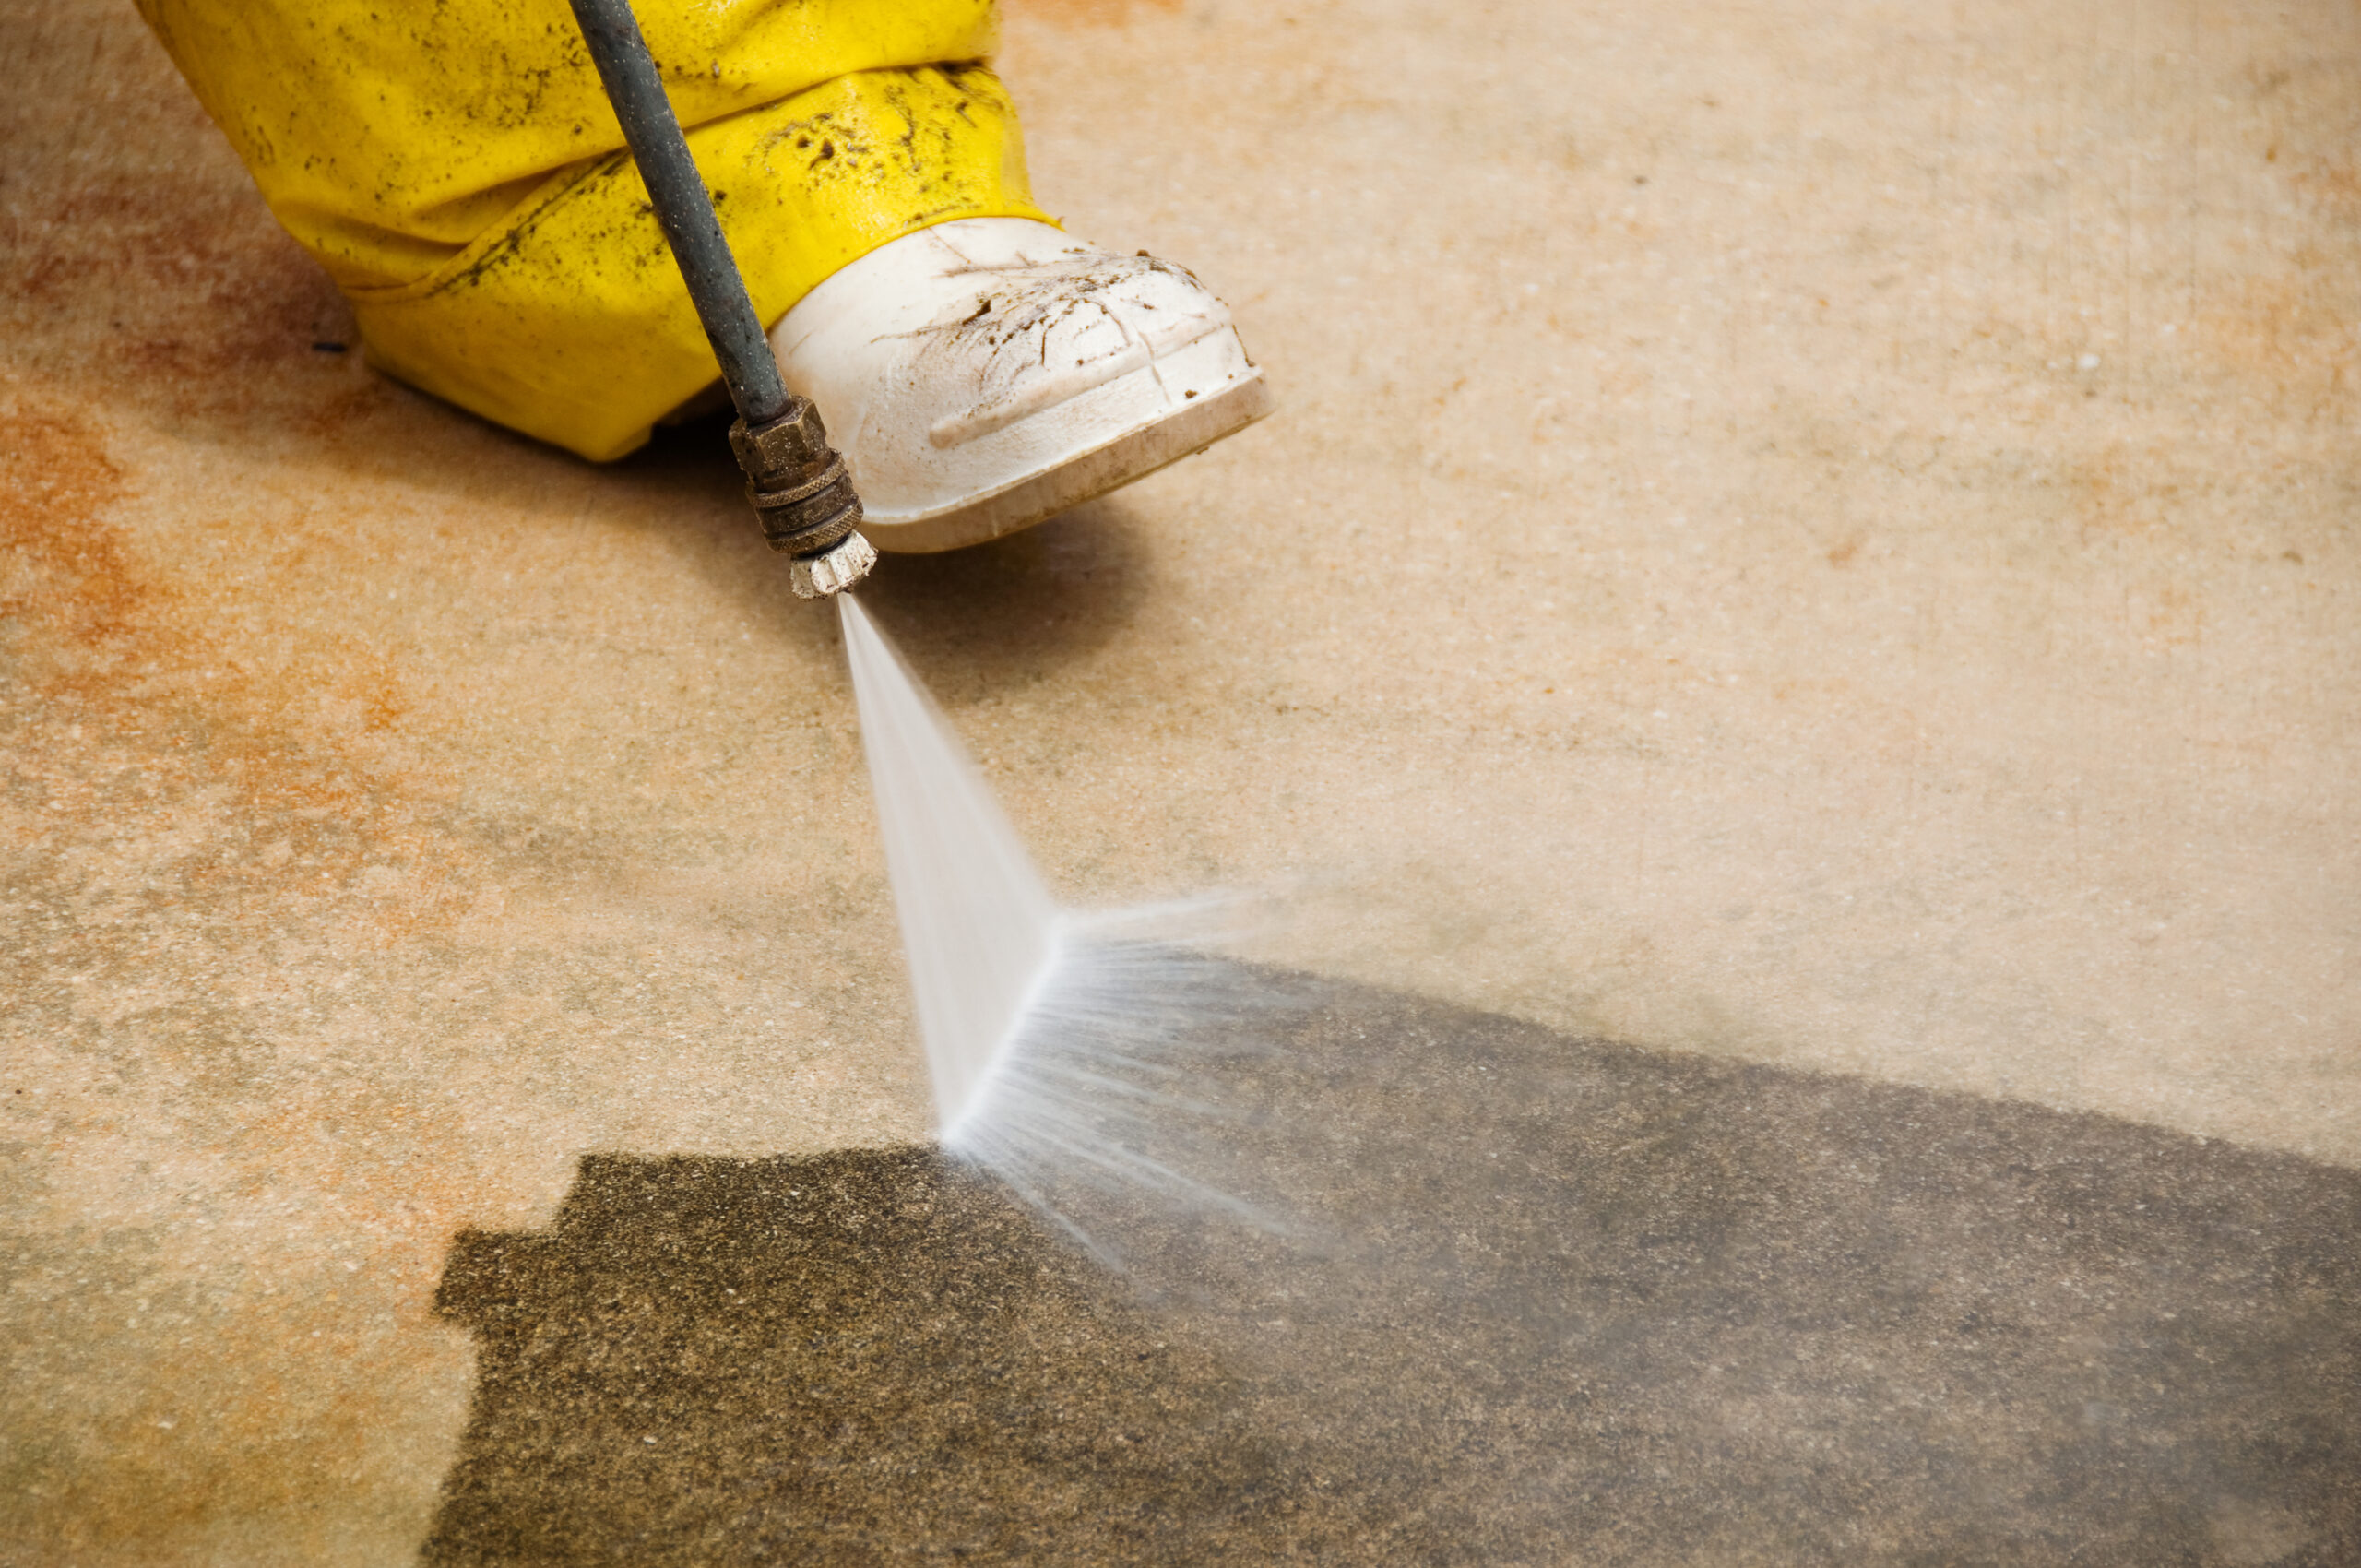 Man power washing business concrete